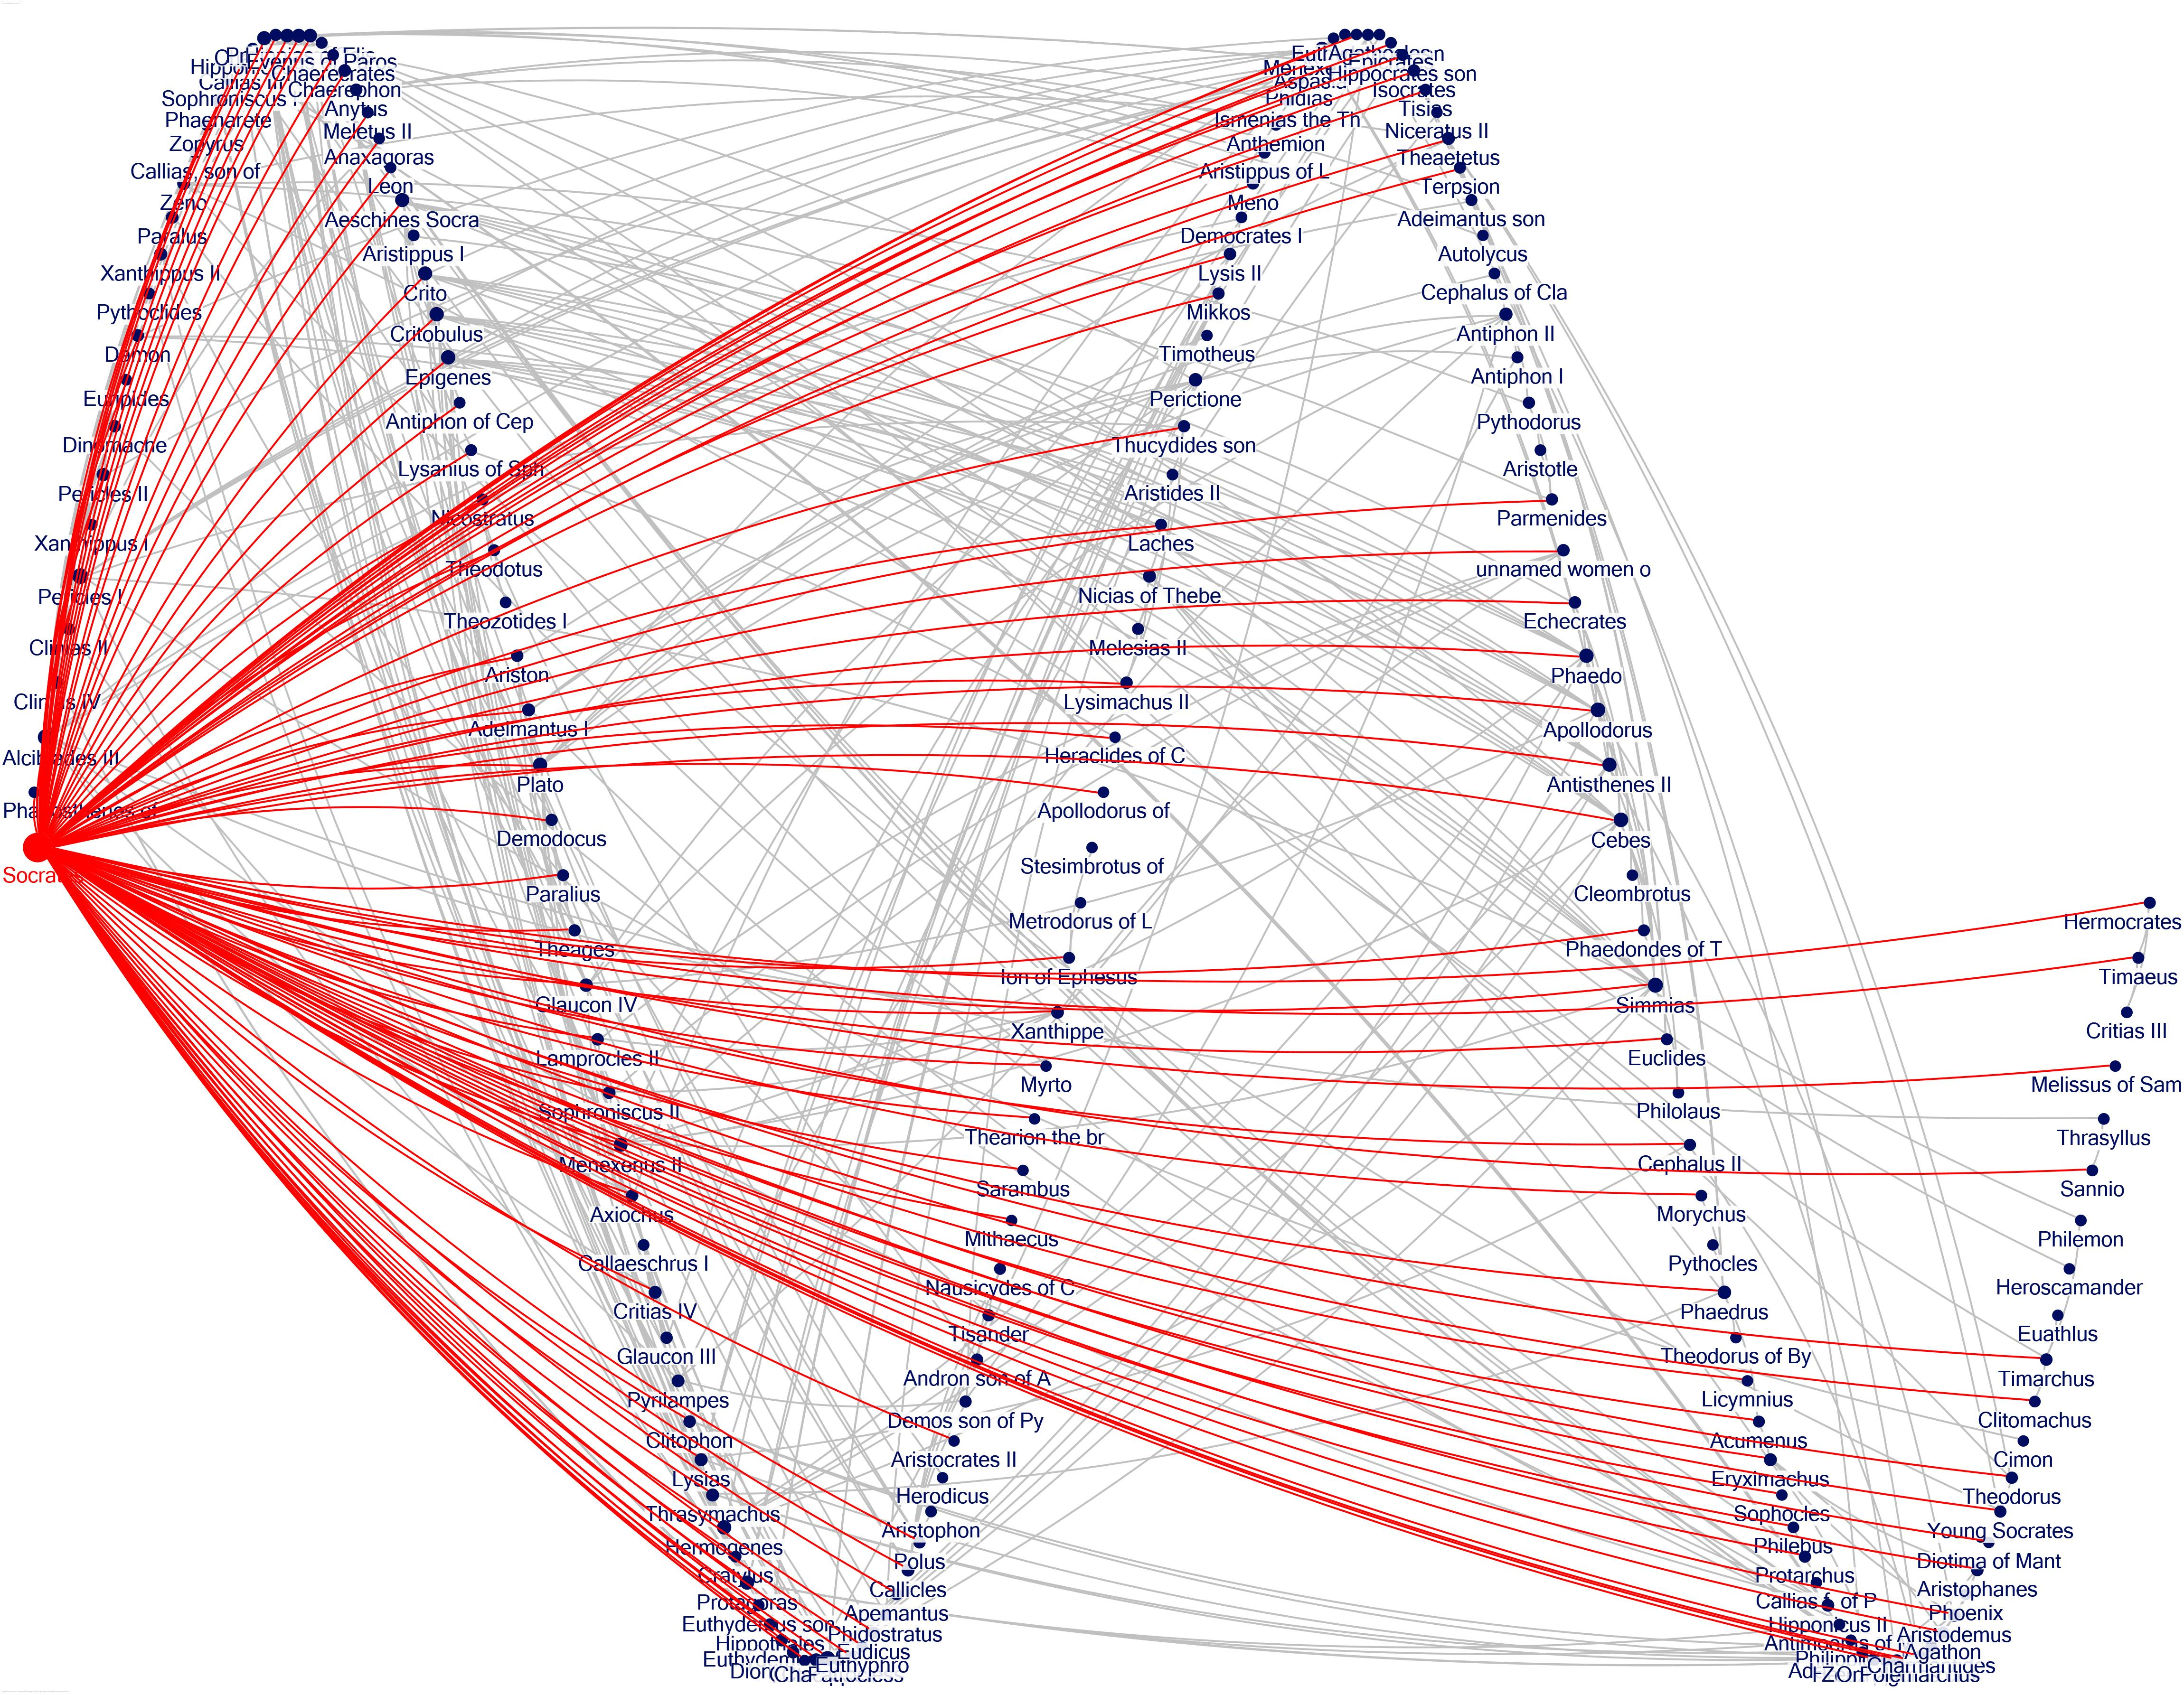 Figure 7. The social network of Socrates, displayed as a sine wave